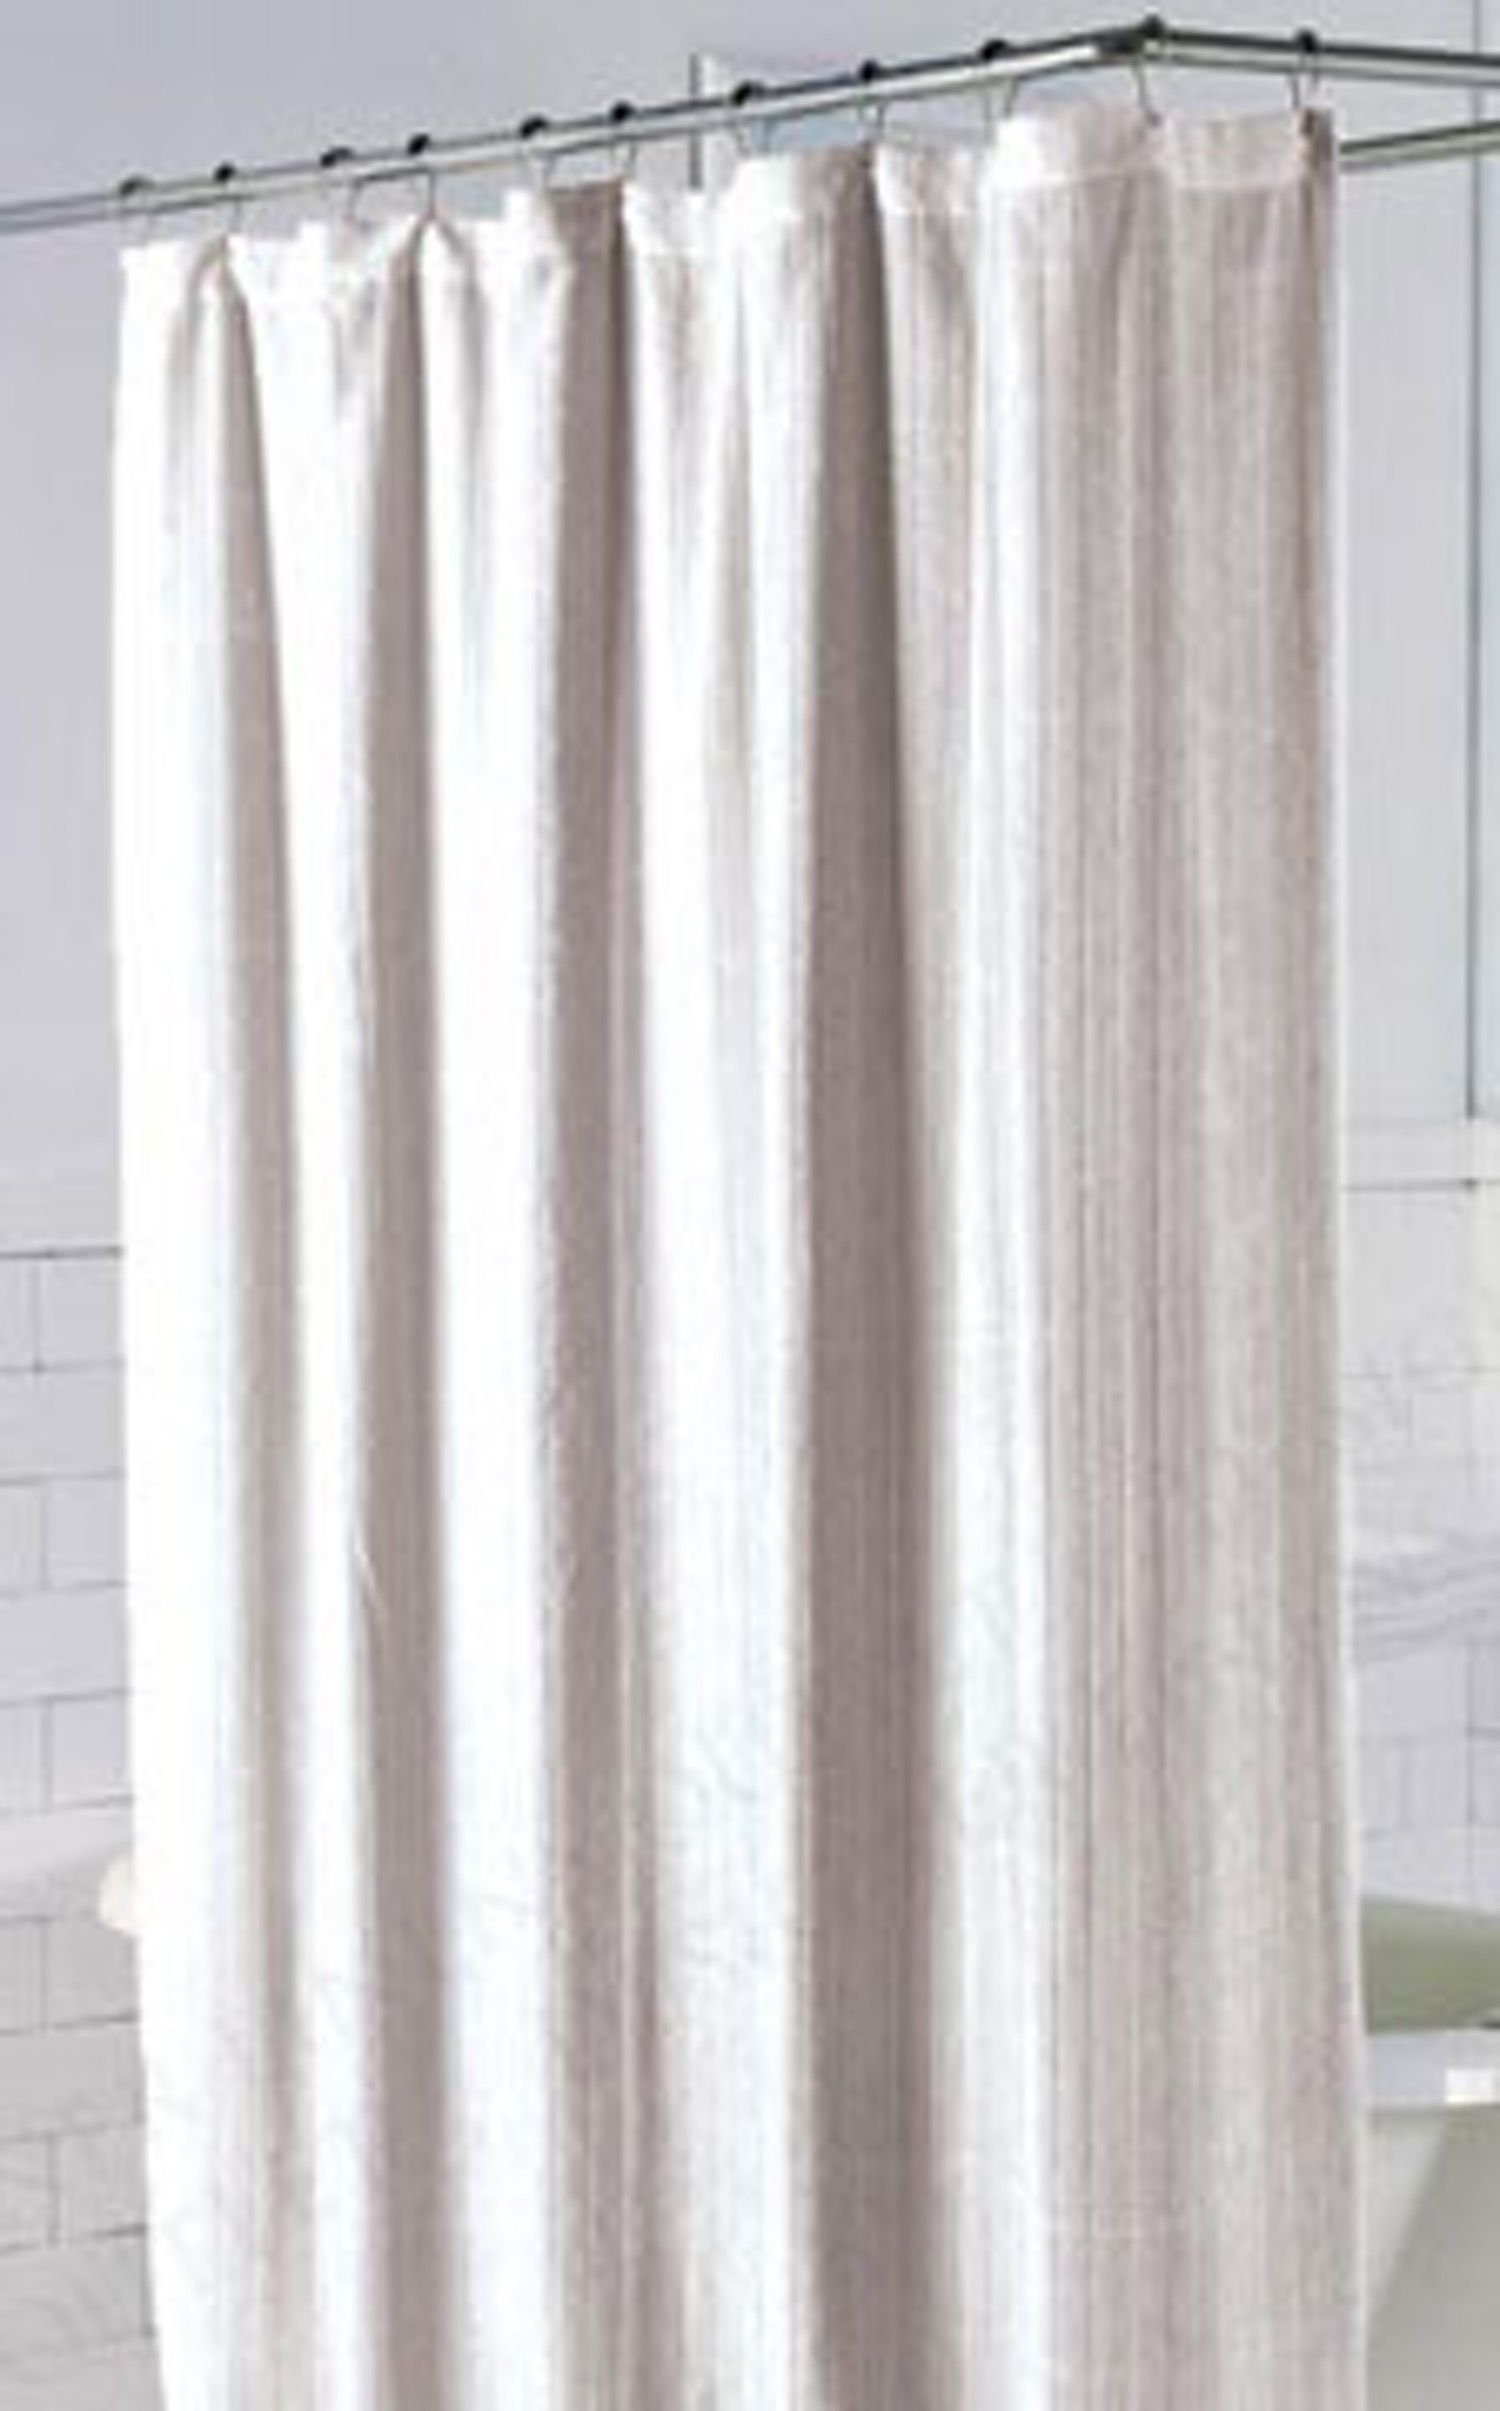 How To Clean Plastic Or Vinyl Shower Curtains Clean Shower